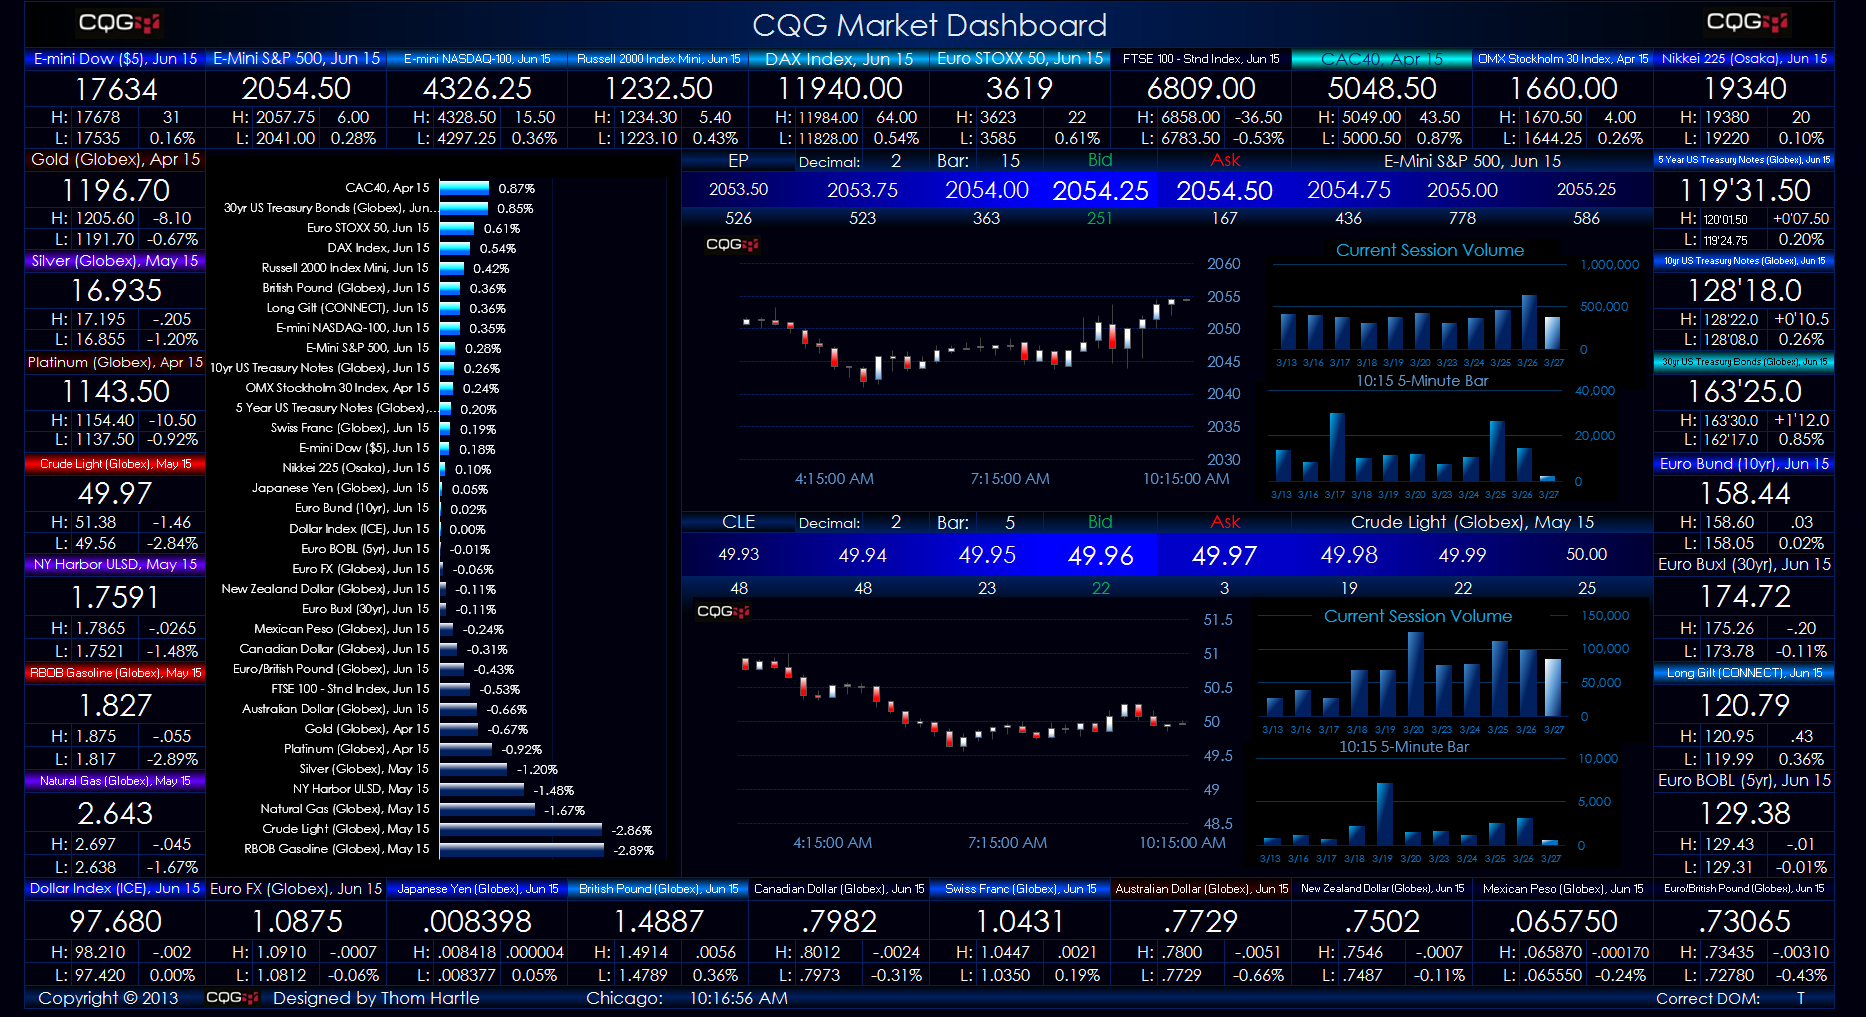 CQG and Excel